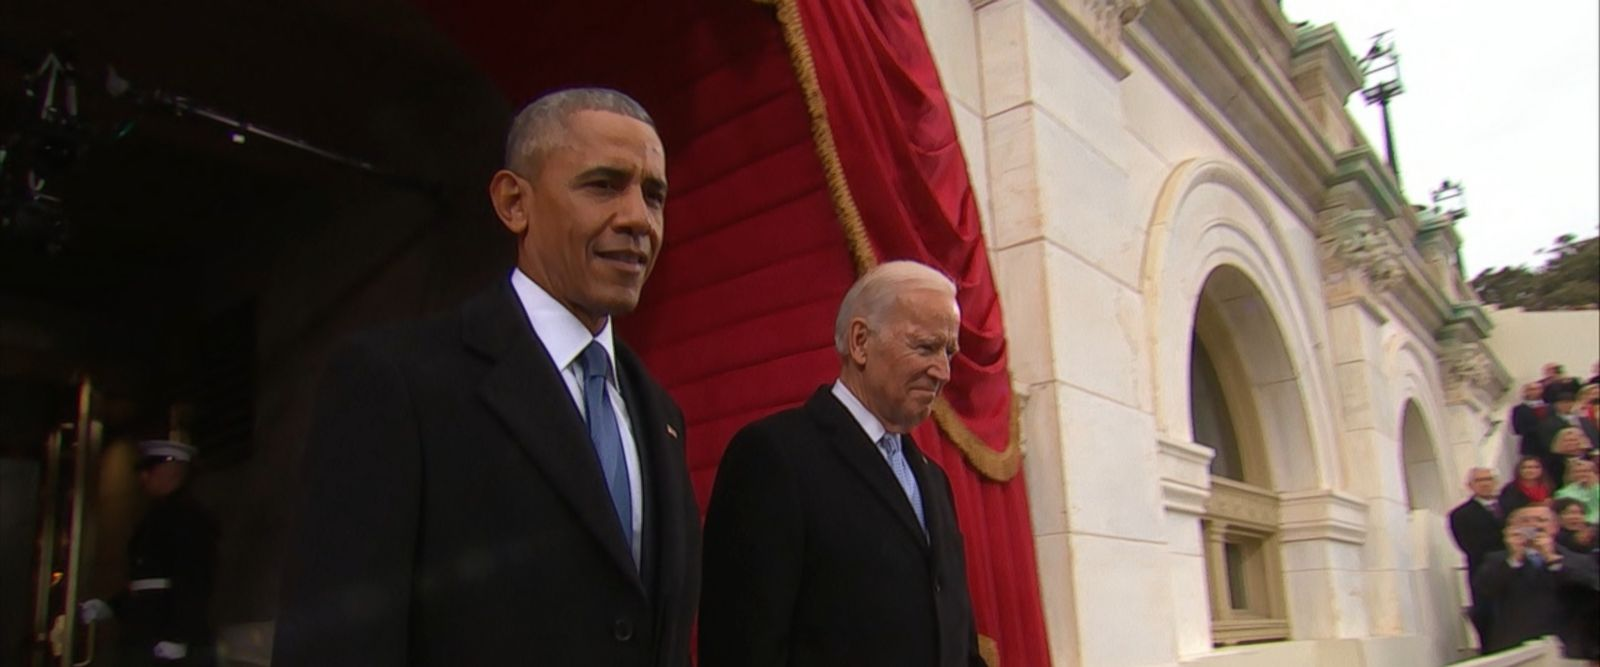 VIDEO: The president descended to the inauguration stage with Vice President Joe Biden.